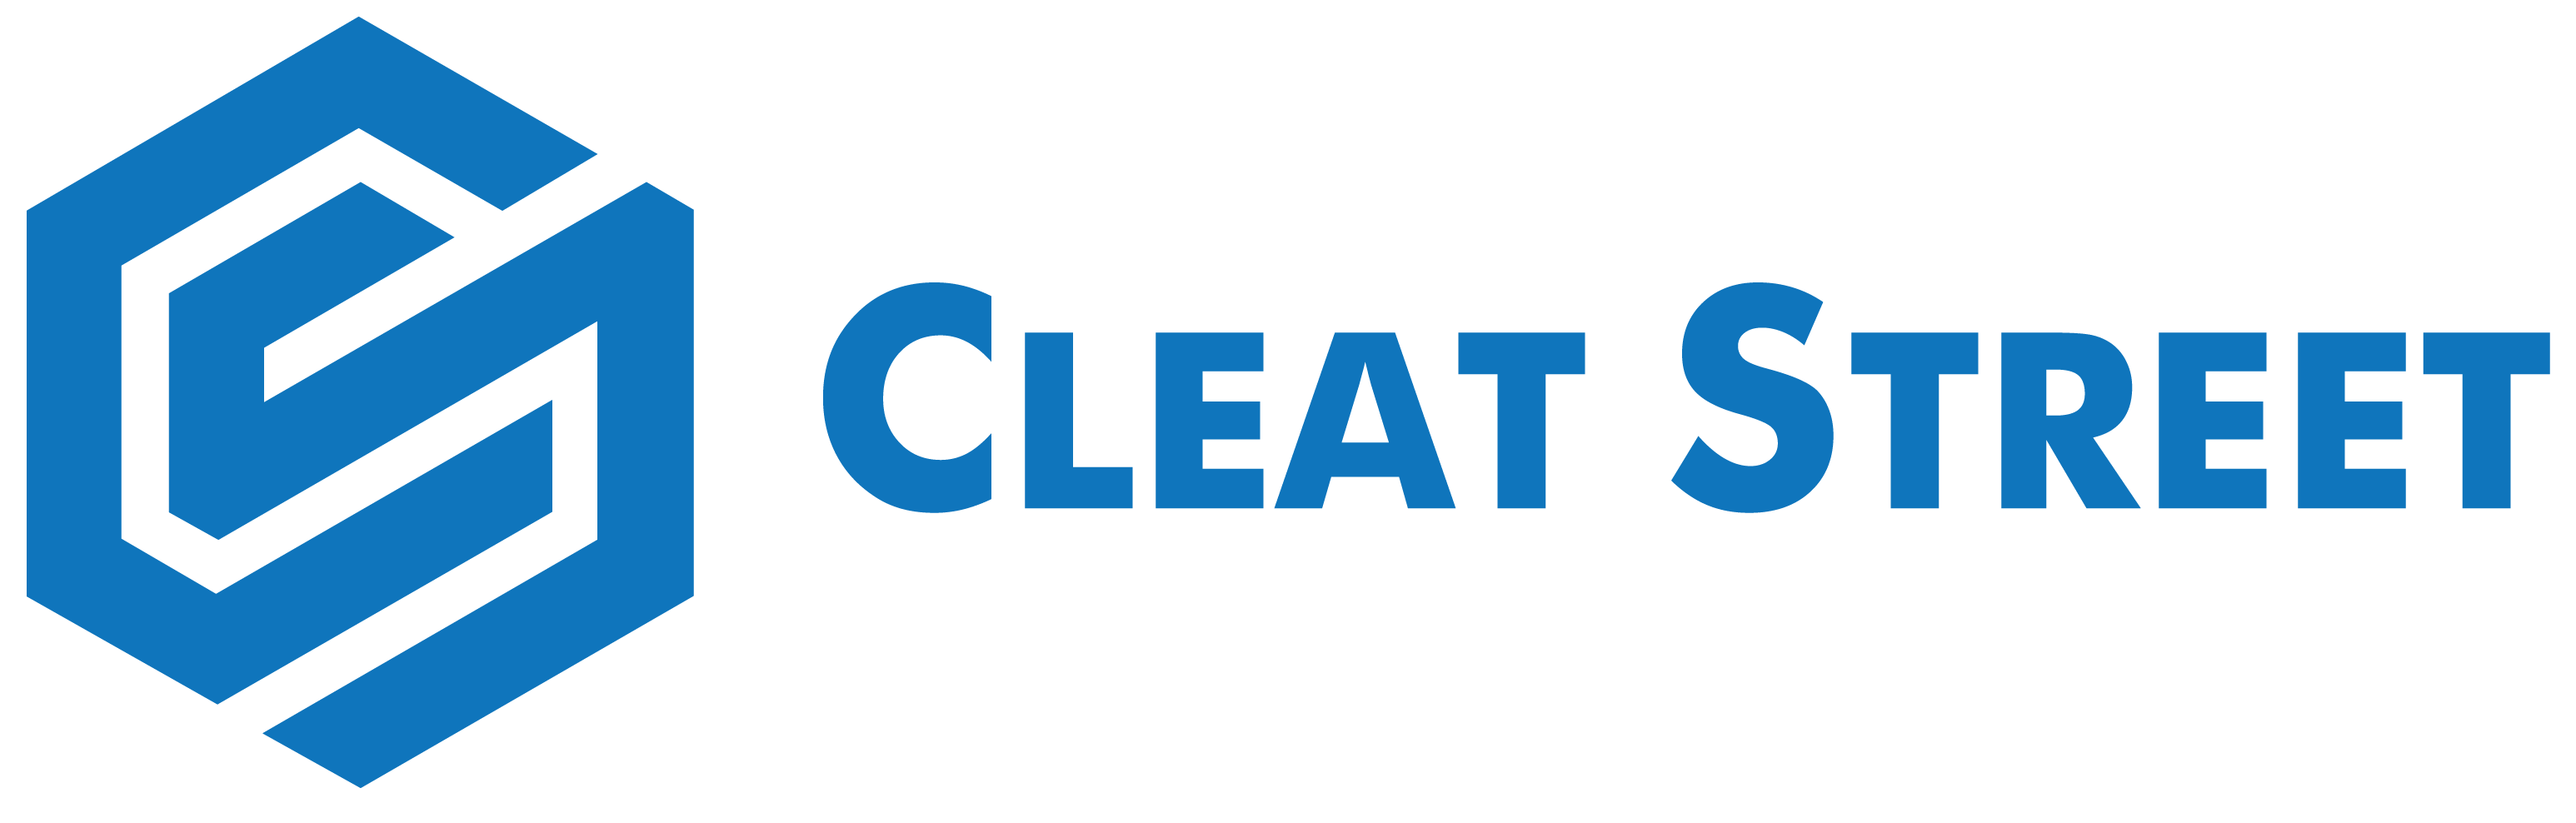 Cleat Street Logo: Words Cleat Street and letters C and S incorporated together in circle form